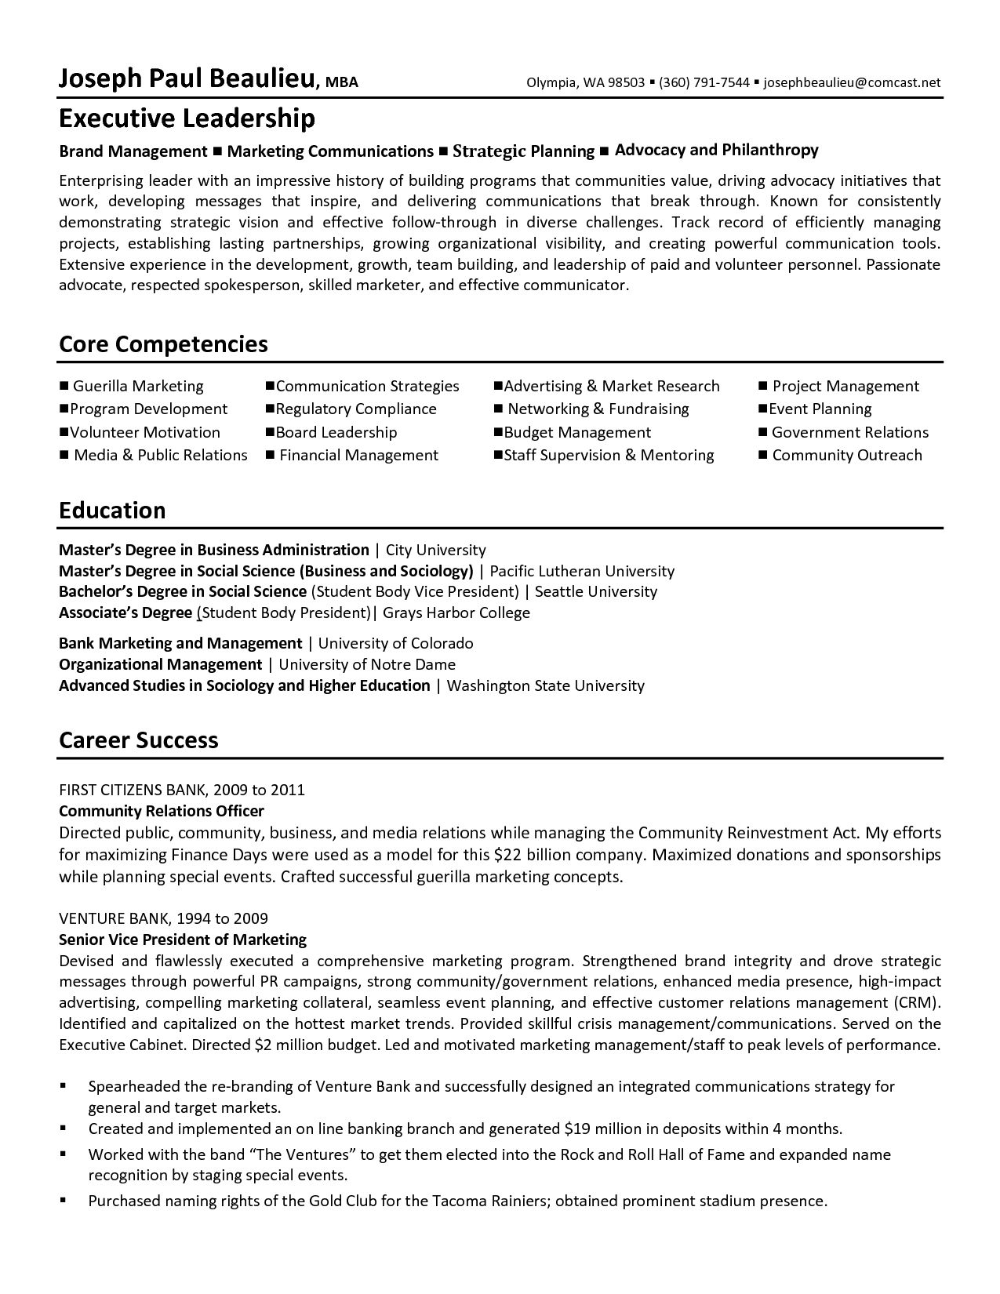 Resume Templates Notre Dame 4 Professional Templates Resume Examples Executive Resume Template Resume Template Examples